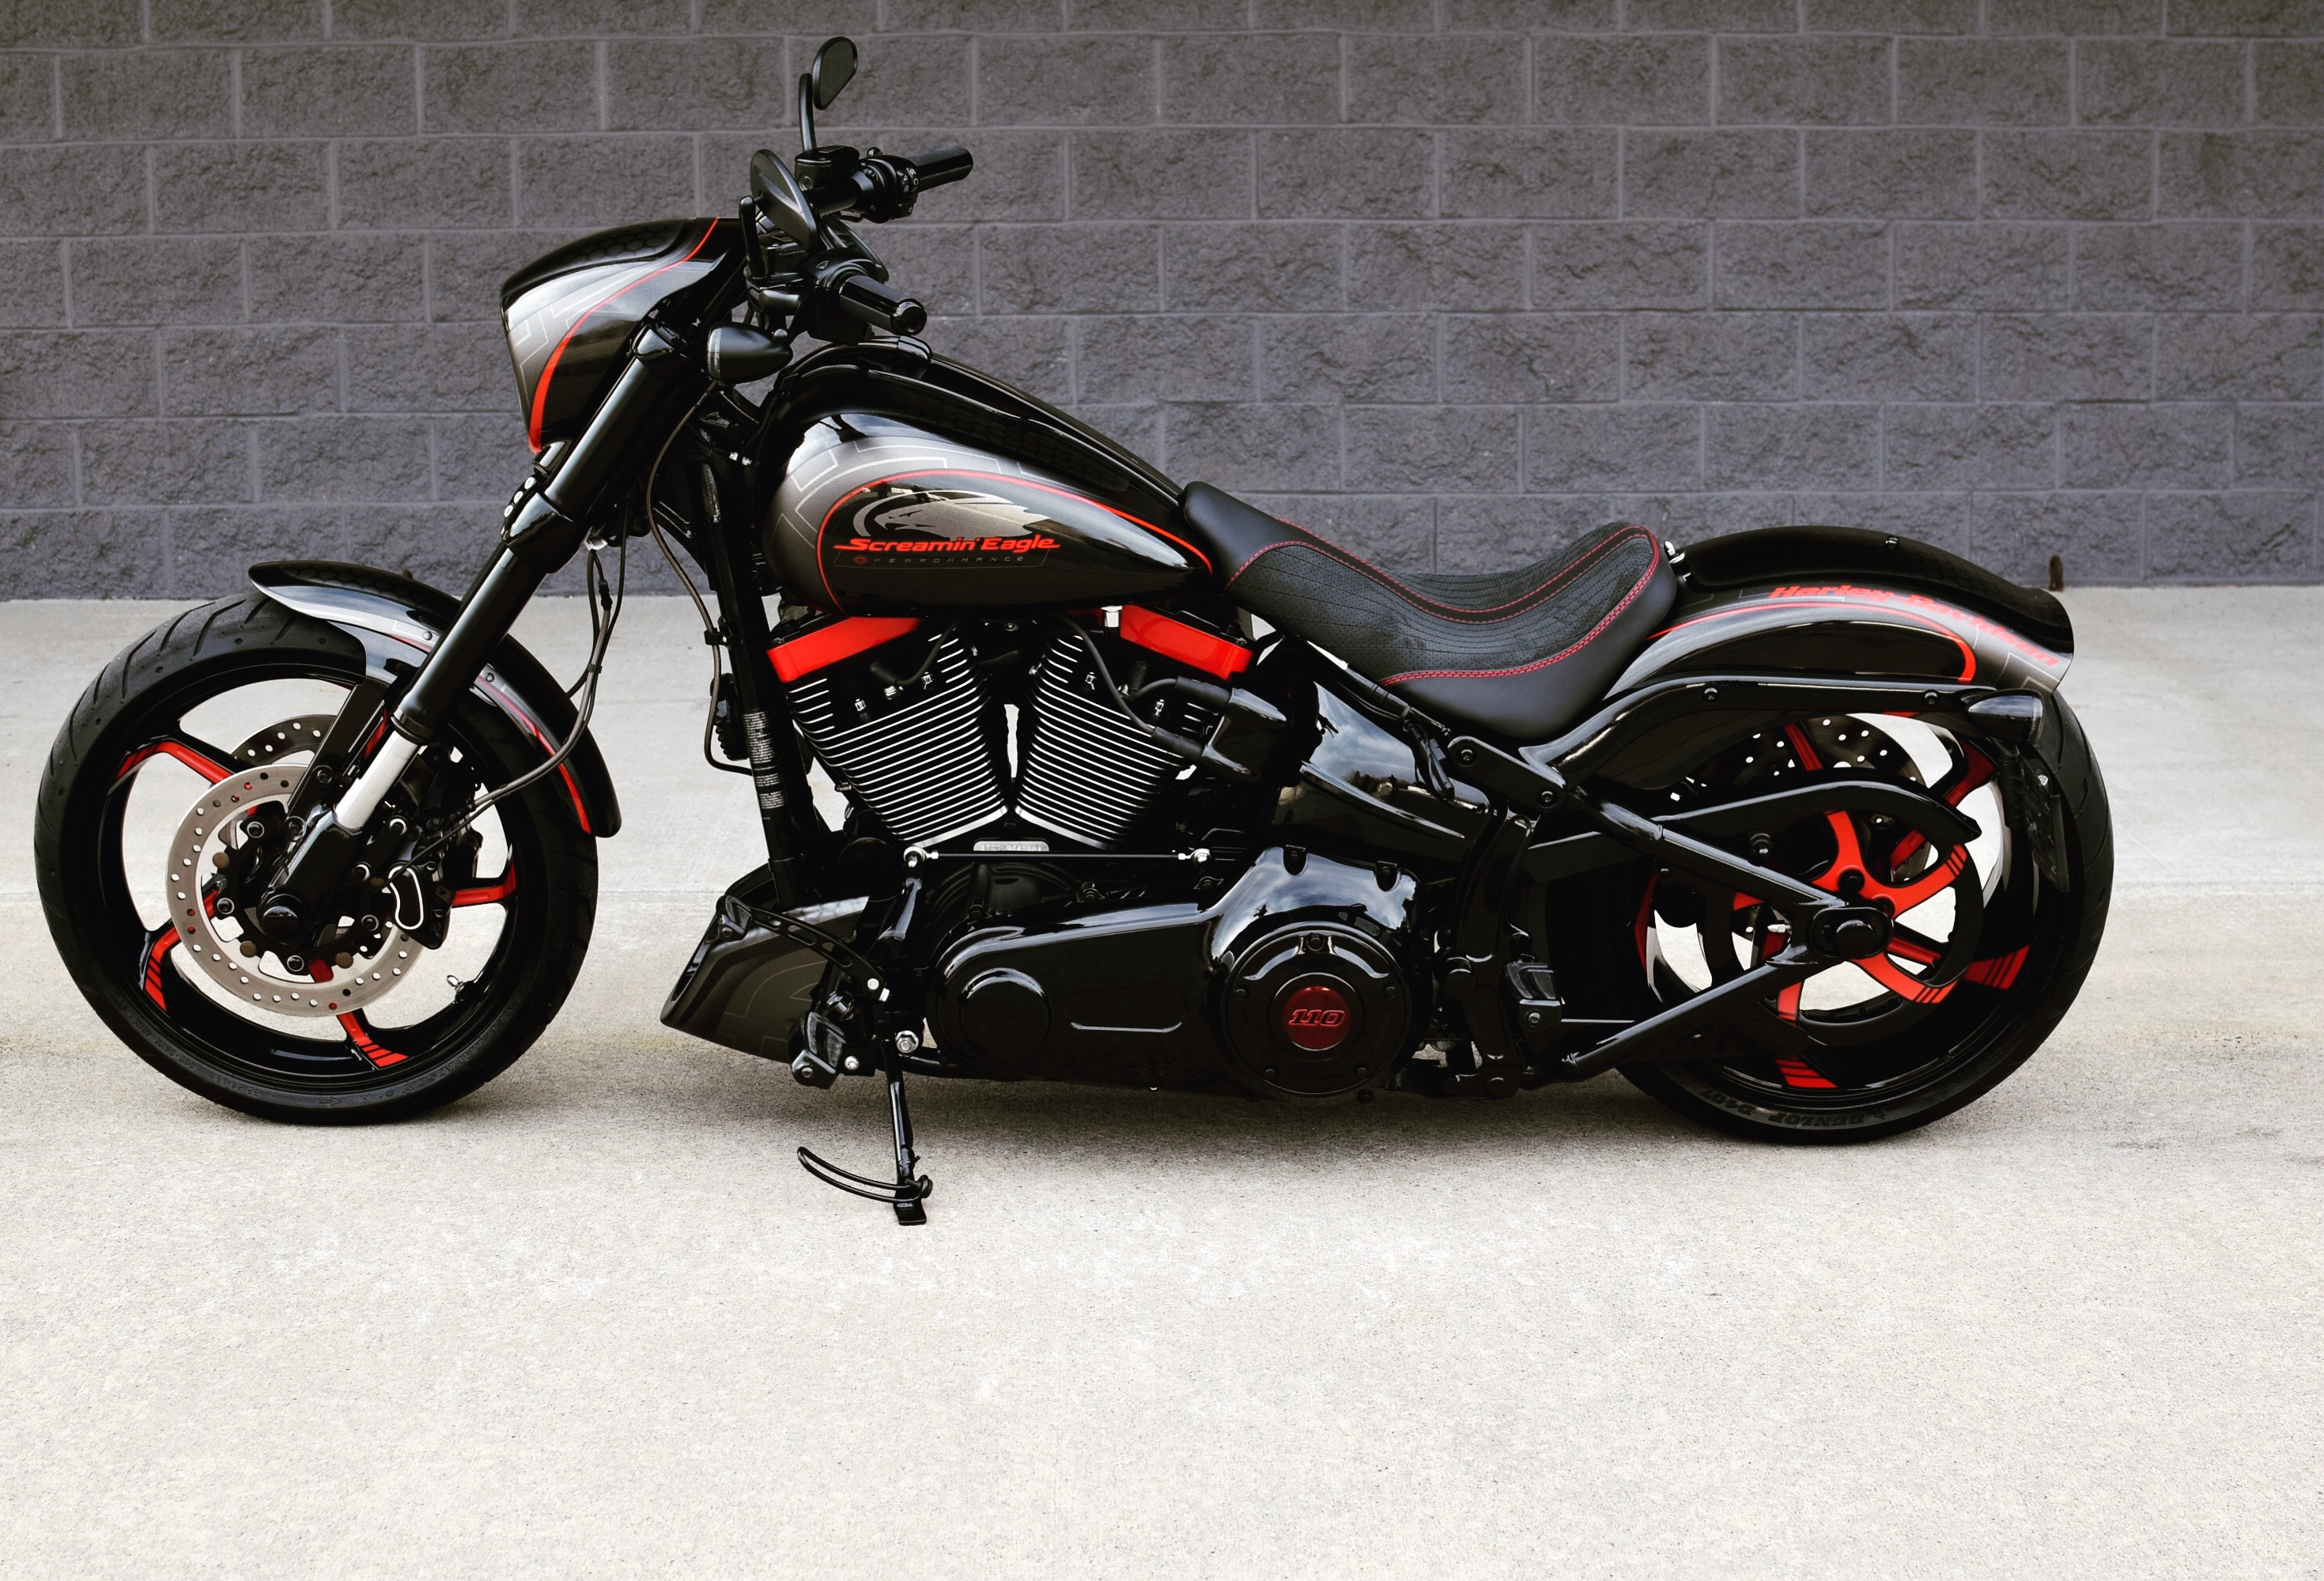 Harley-davidson custom photo - 2